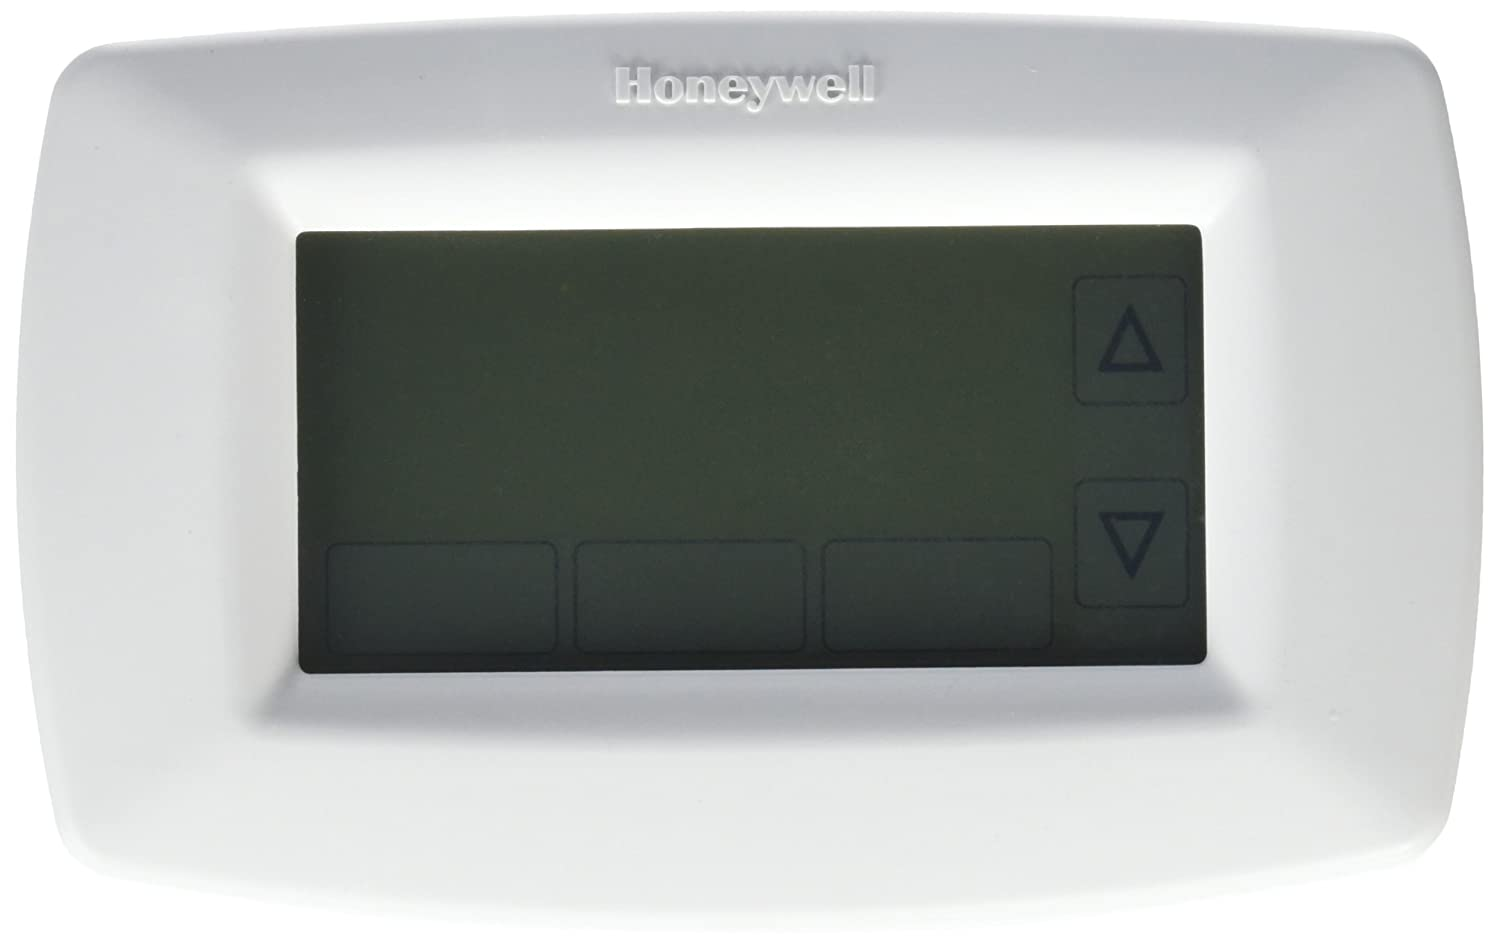 Honeywell 7-Day Touchscreen Programmable Thermostat (RTH7600D1030/E) - Programmable Household Thermostats - Amazon.com